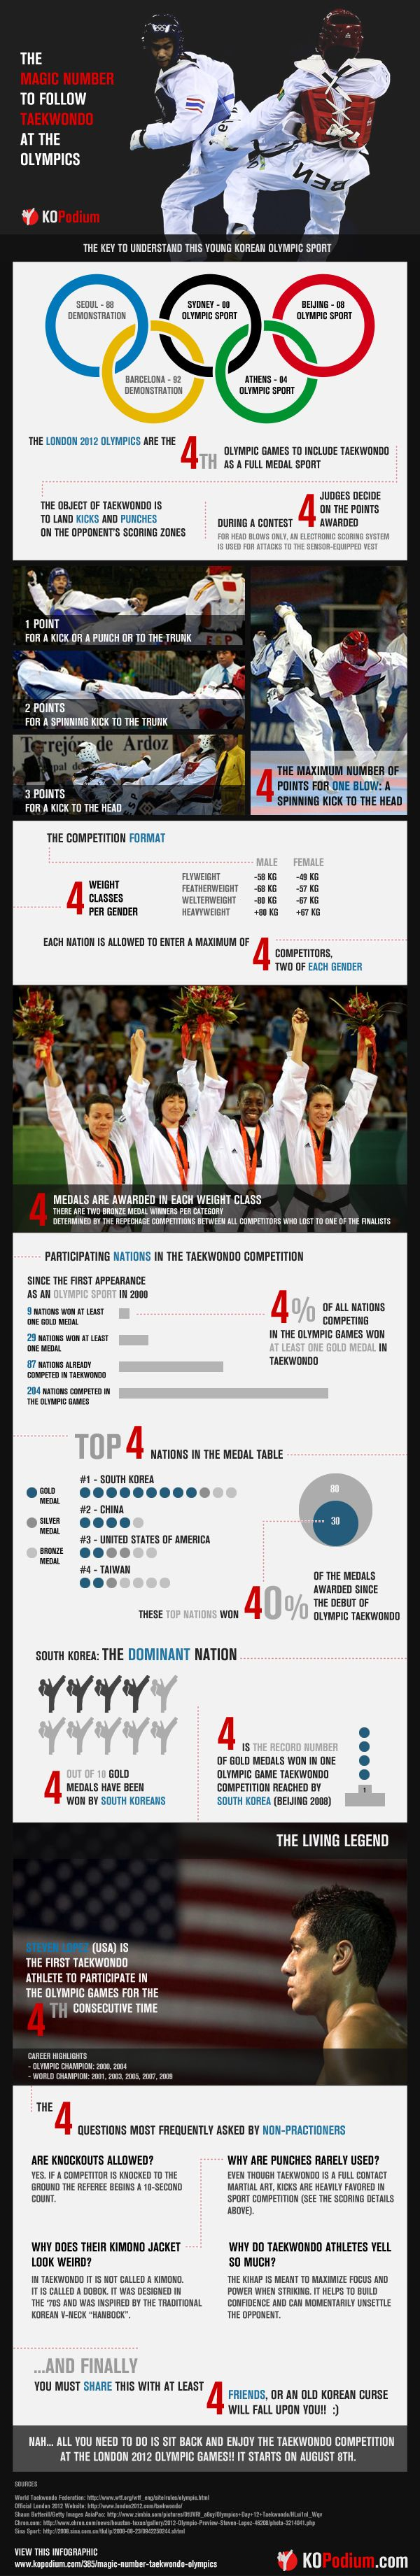 The Magic Number To Follow Taekwondo At The Olympics